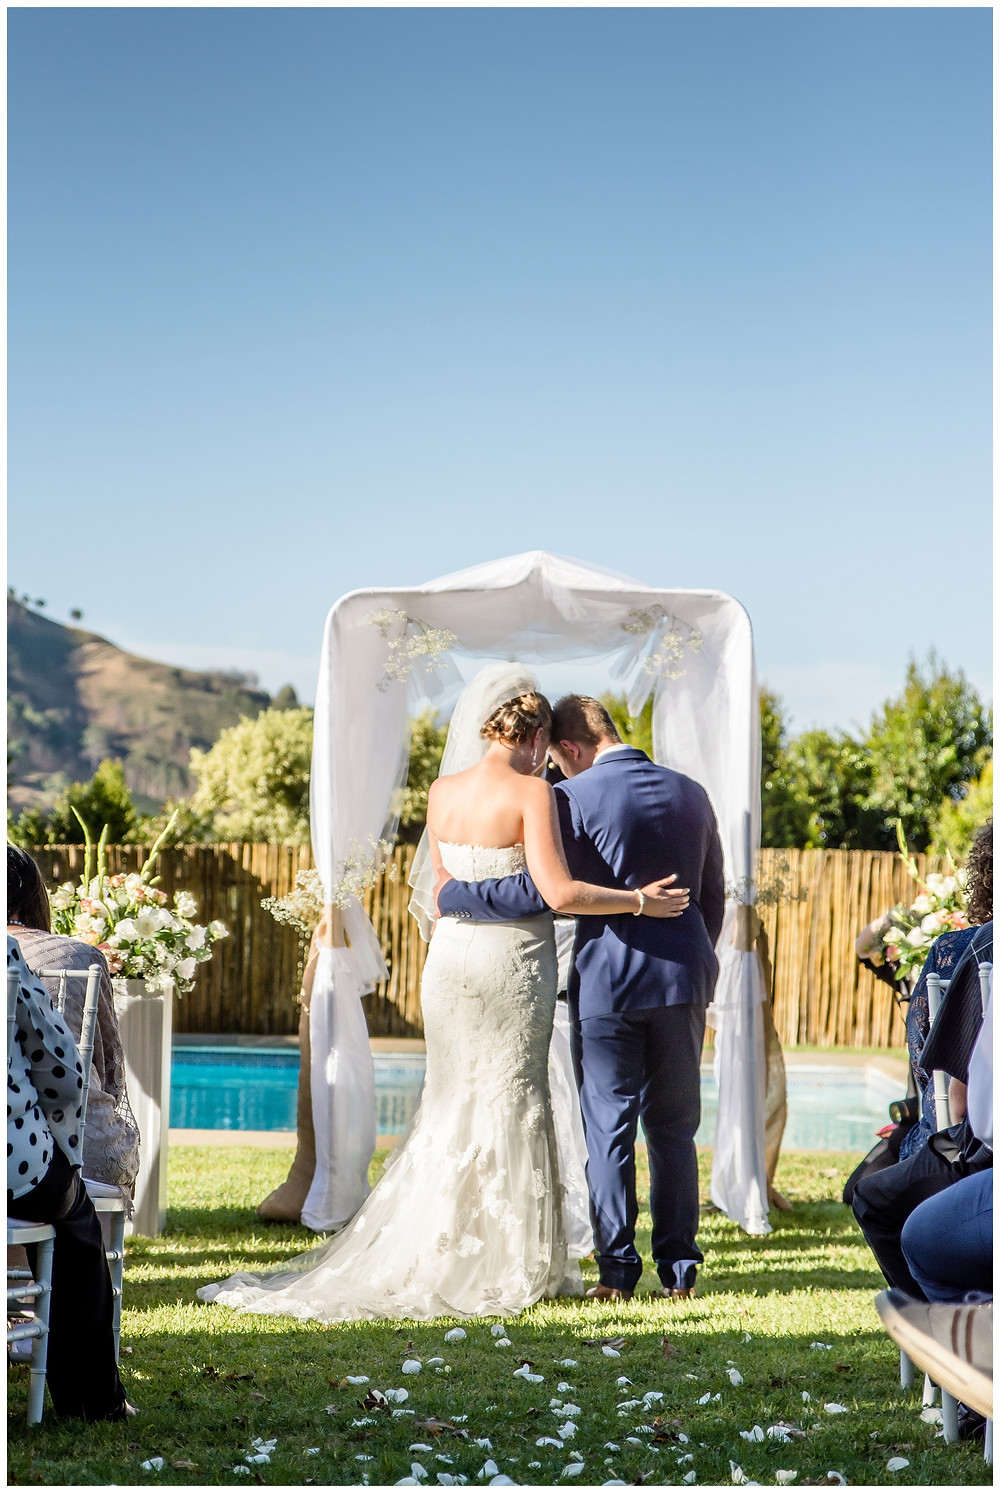 Wedding at Le Pommier, Cape Town by Jaqui Franco Photography